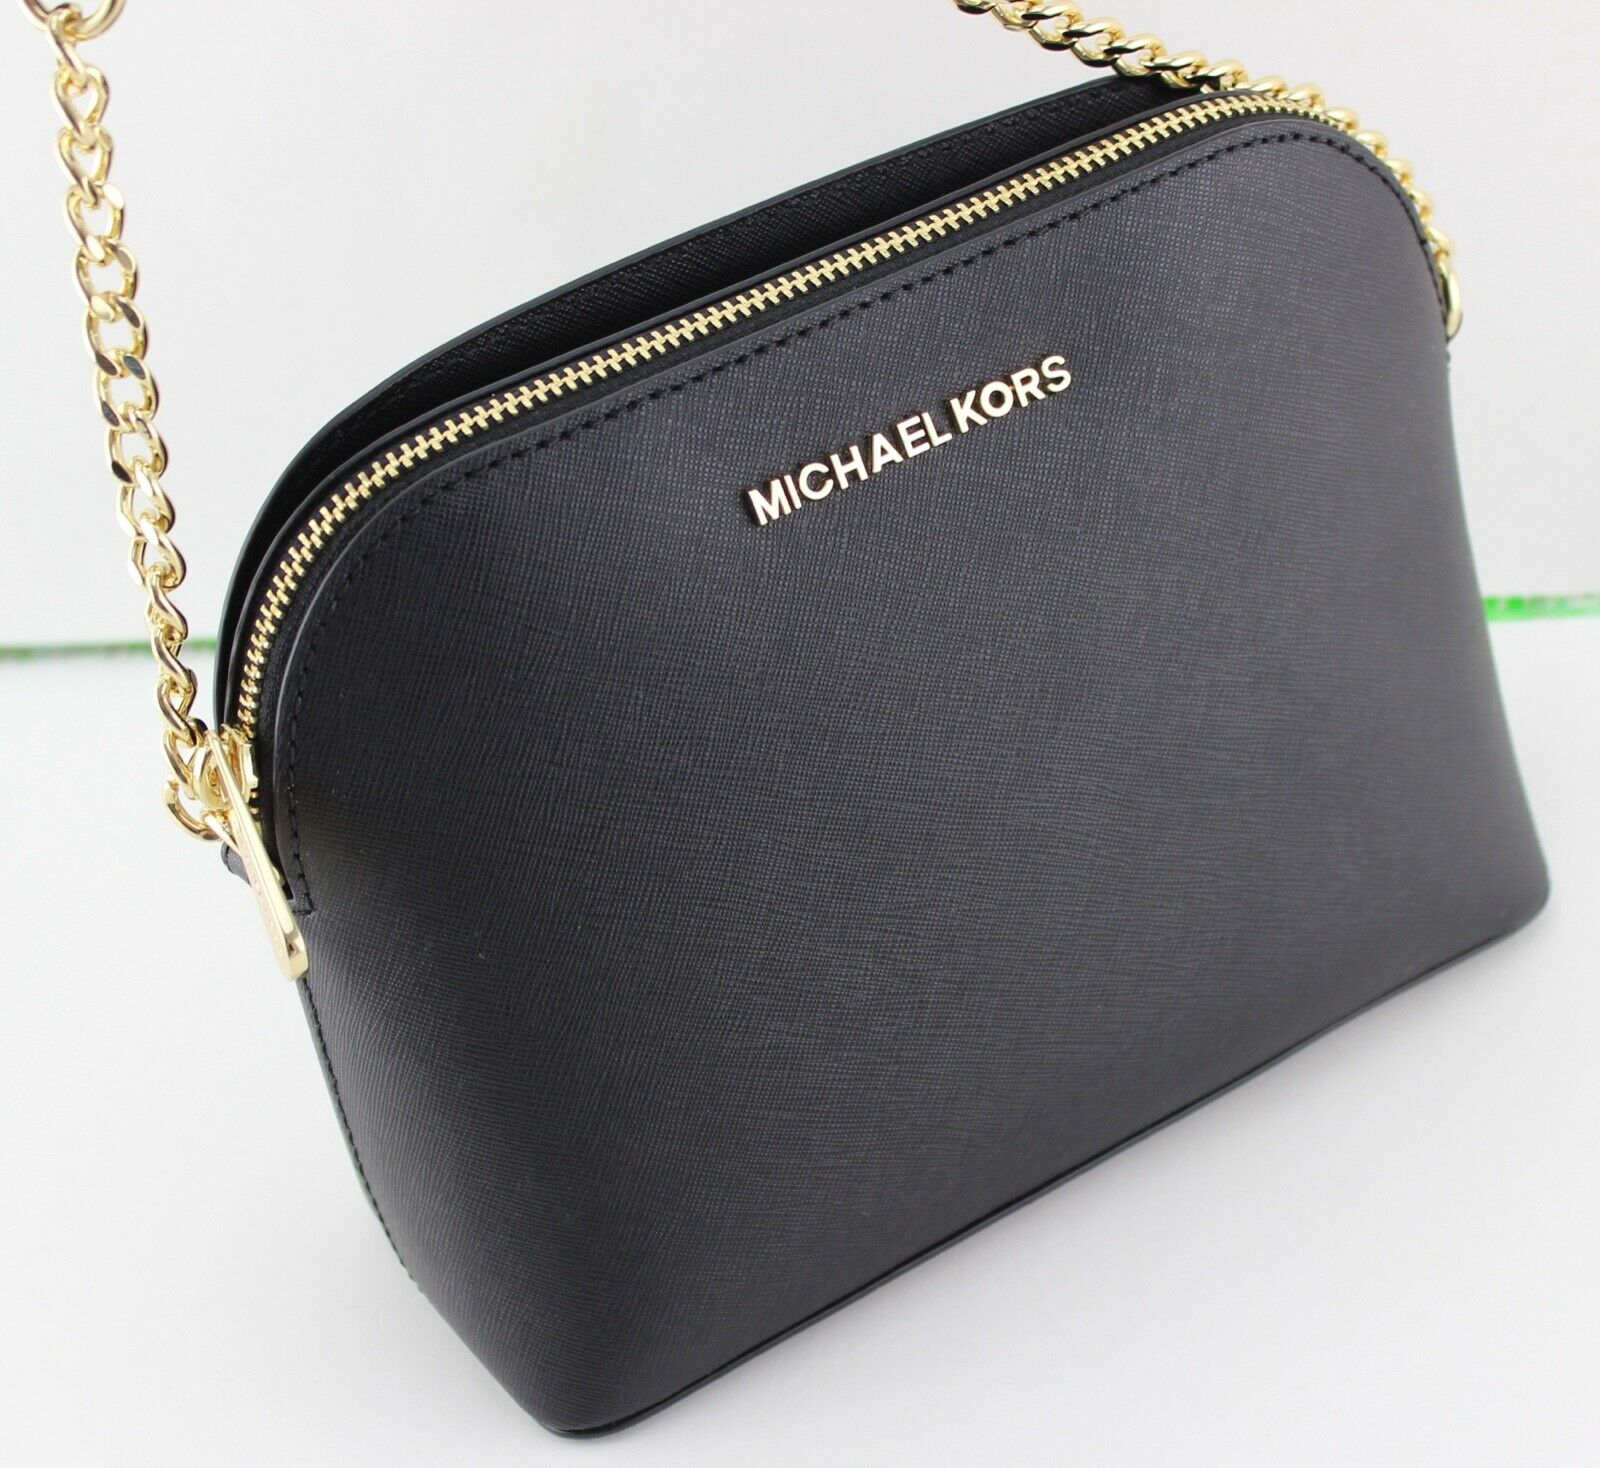 NEW AUTHENTIC MICHAEL KORS CINDY BLACK LG LARGE DOME CROSSBO